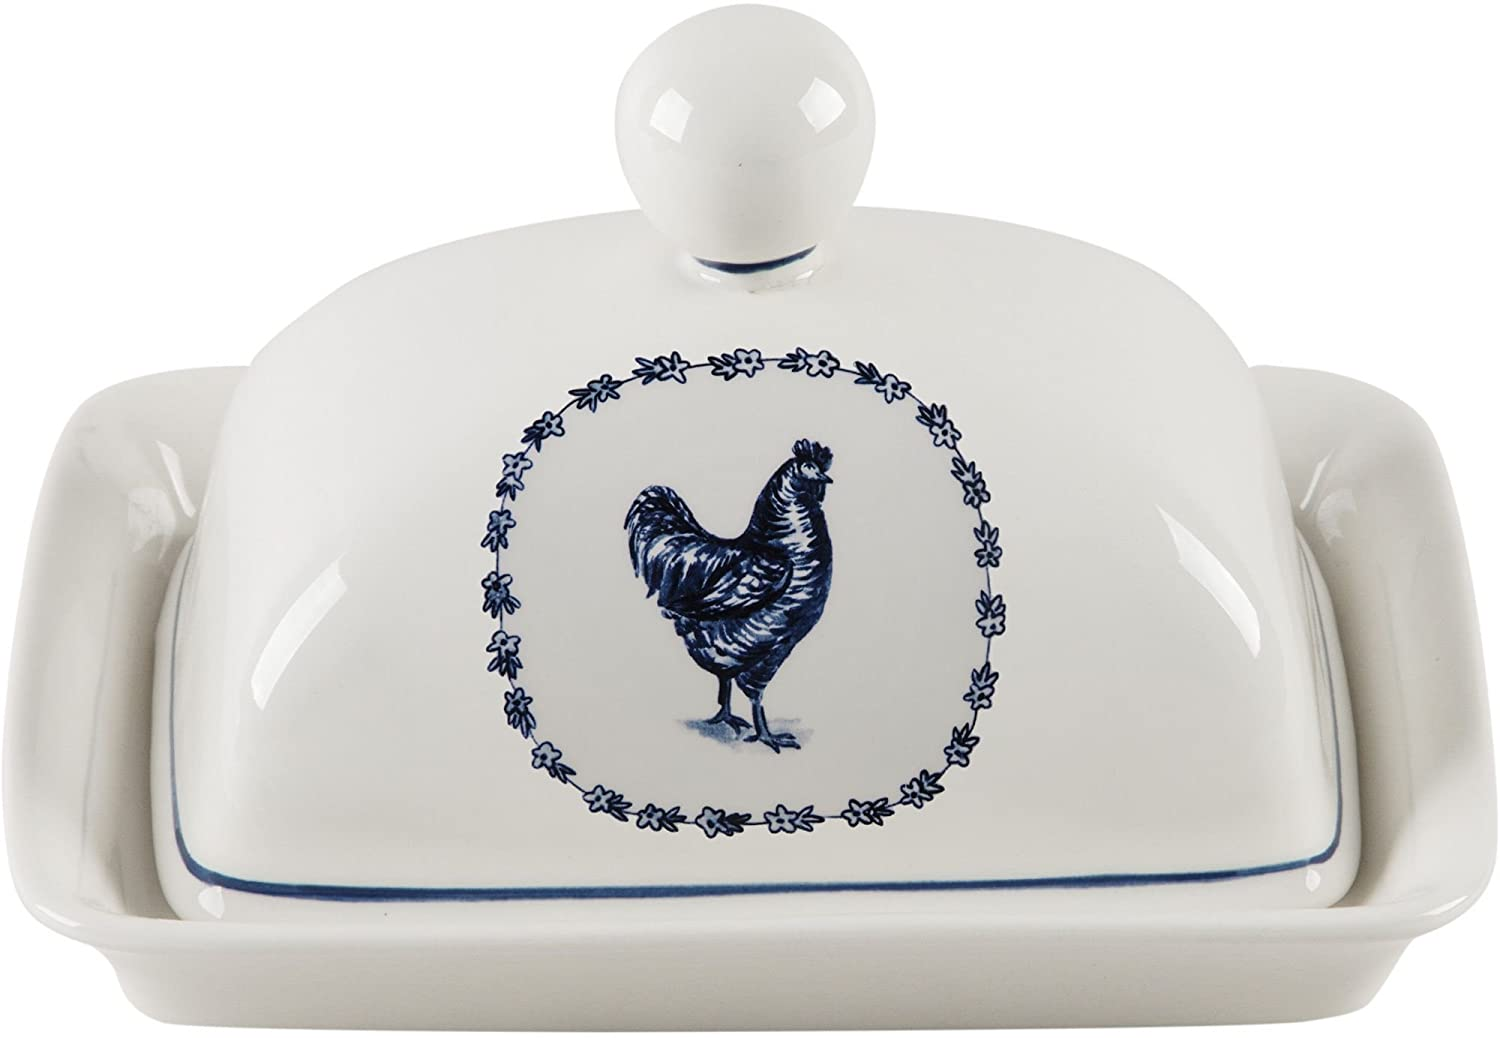 Home Essentials 61239 Molly HatchヴィンテージFarm RoosterセラミックCoveredバターディッシュ、7